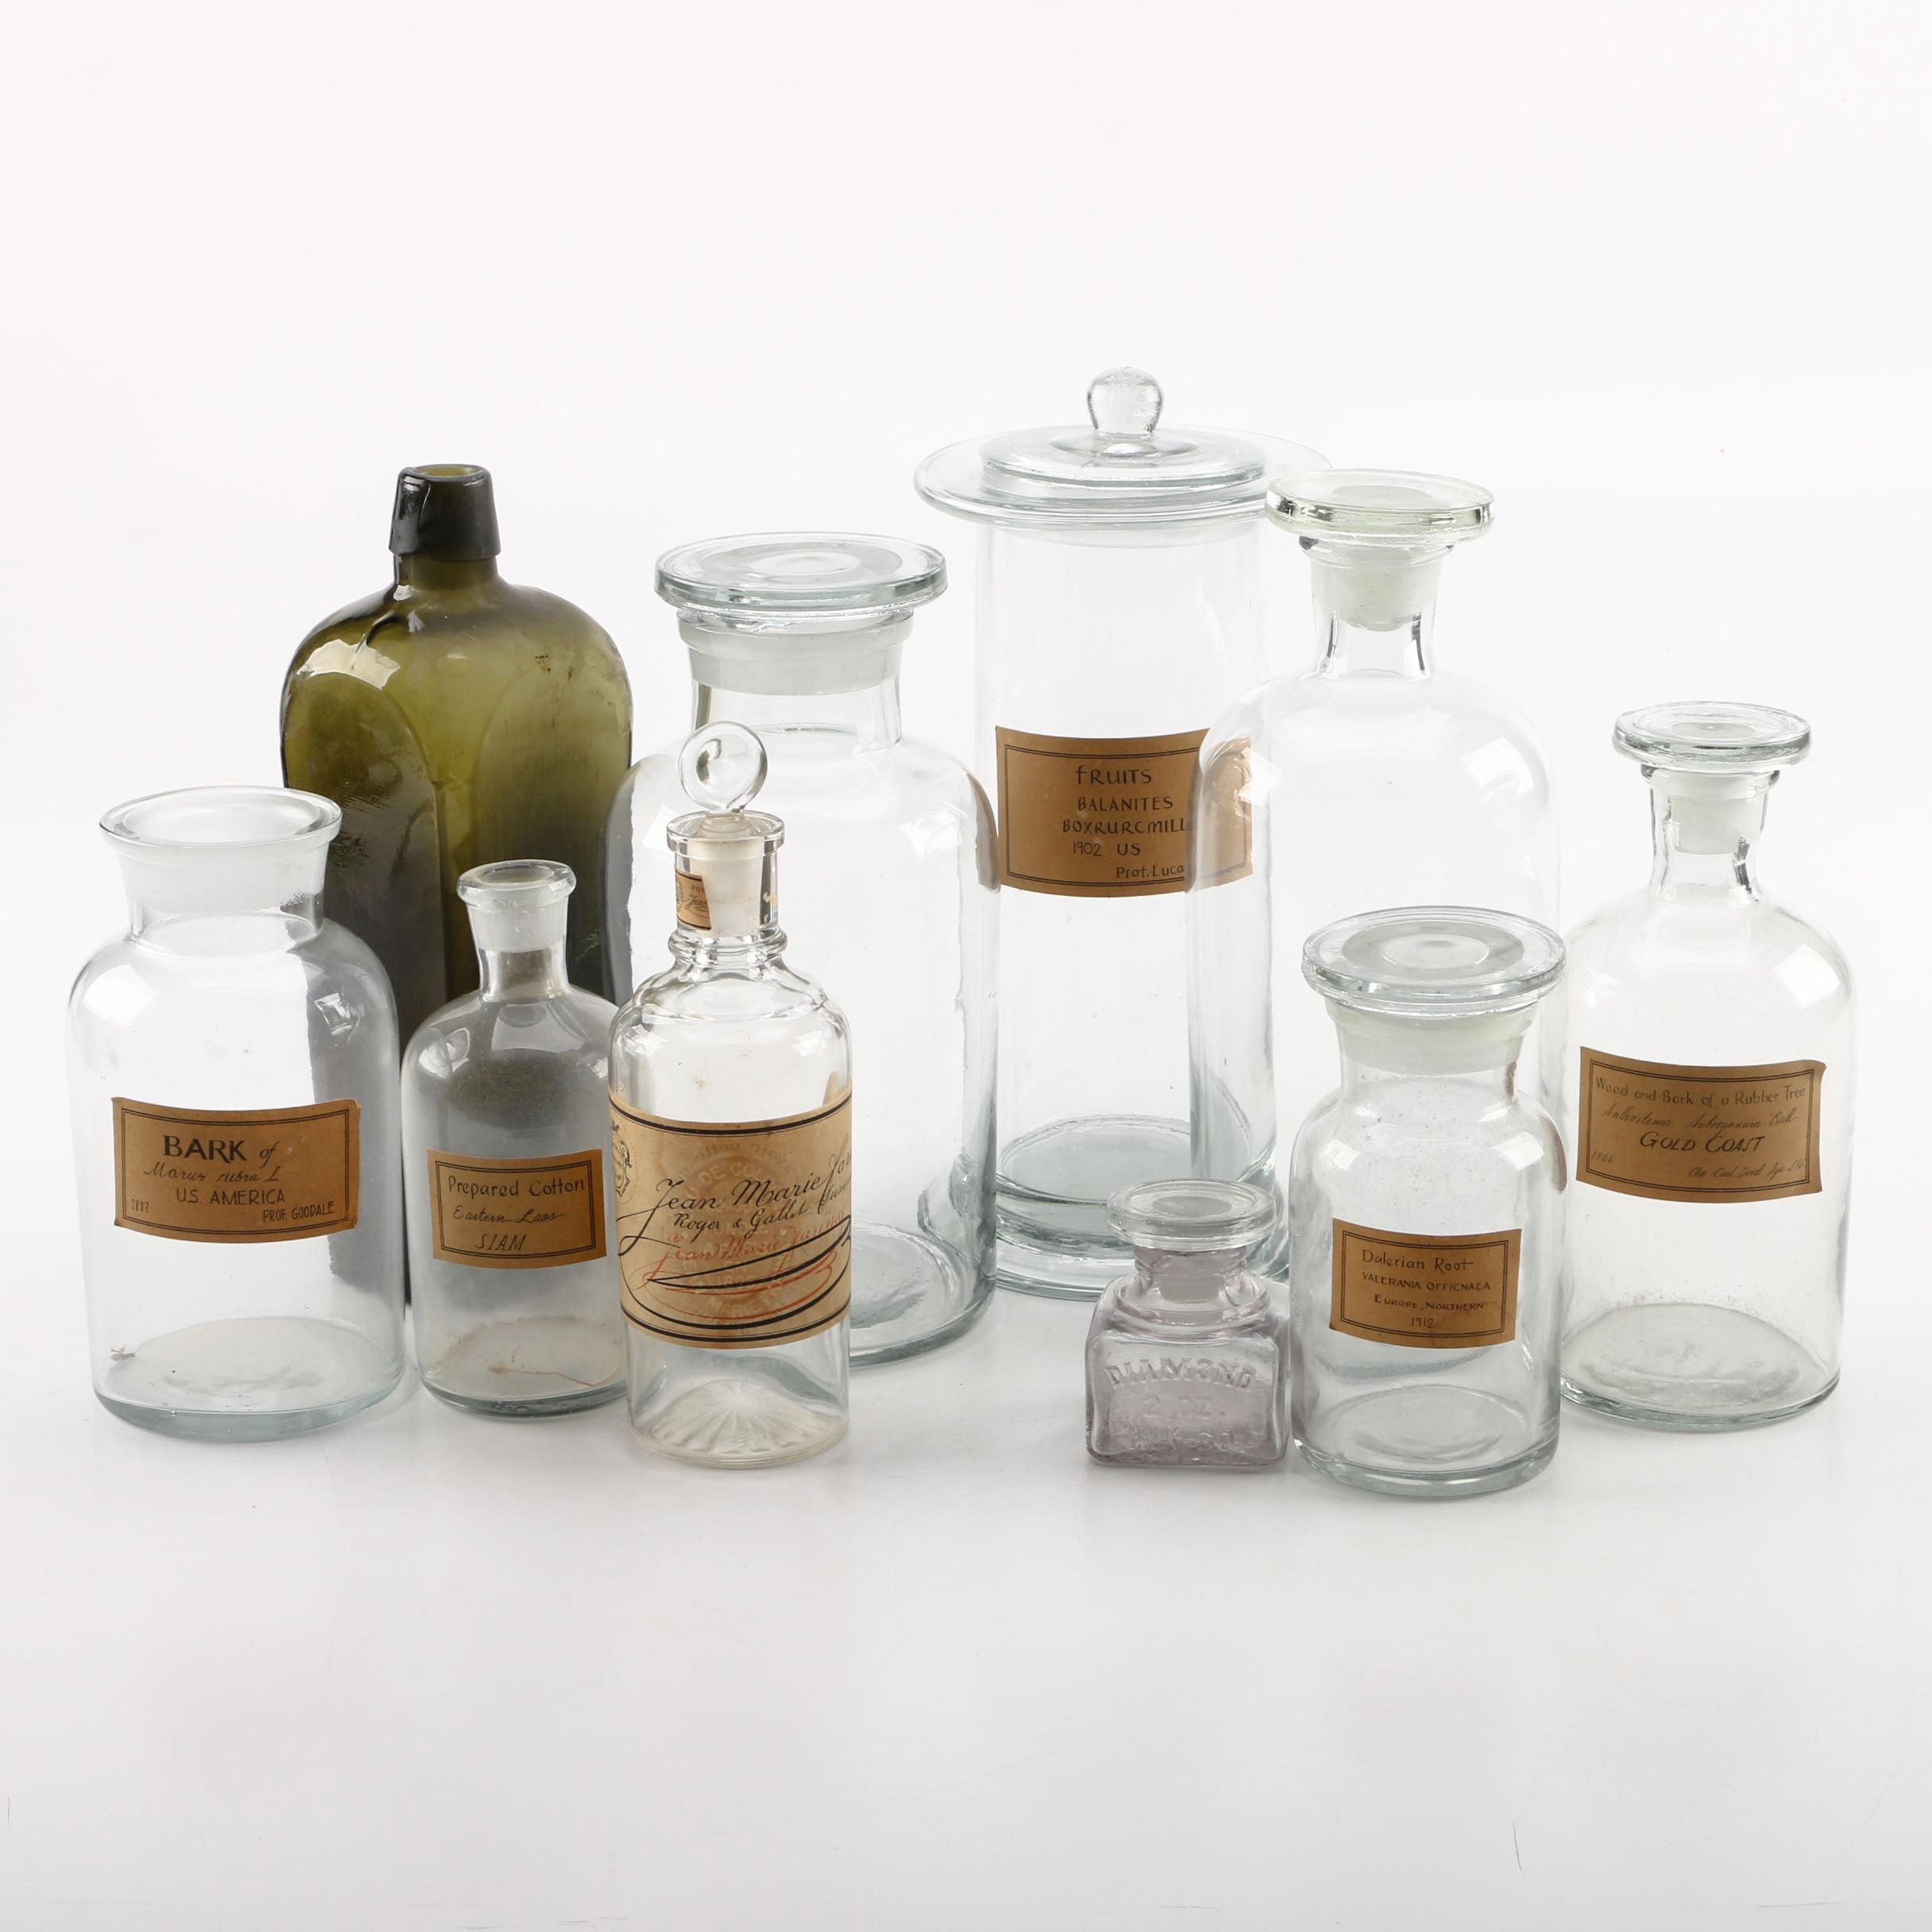 Vintage Apothecary, Perfume and Ink Bottles